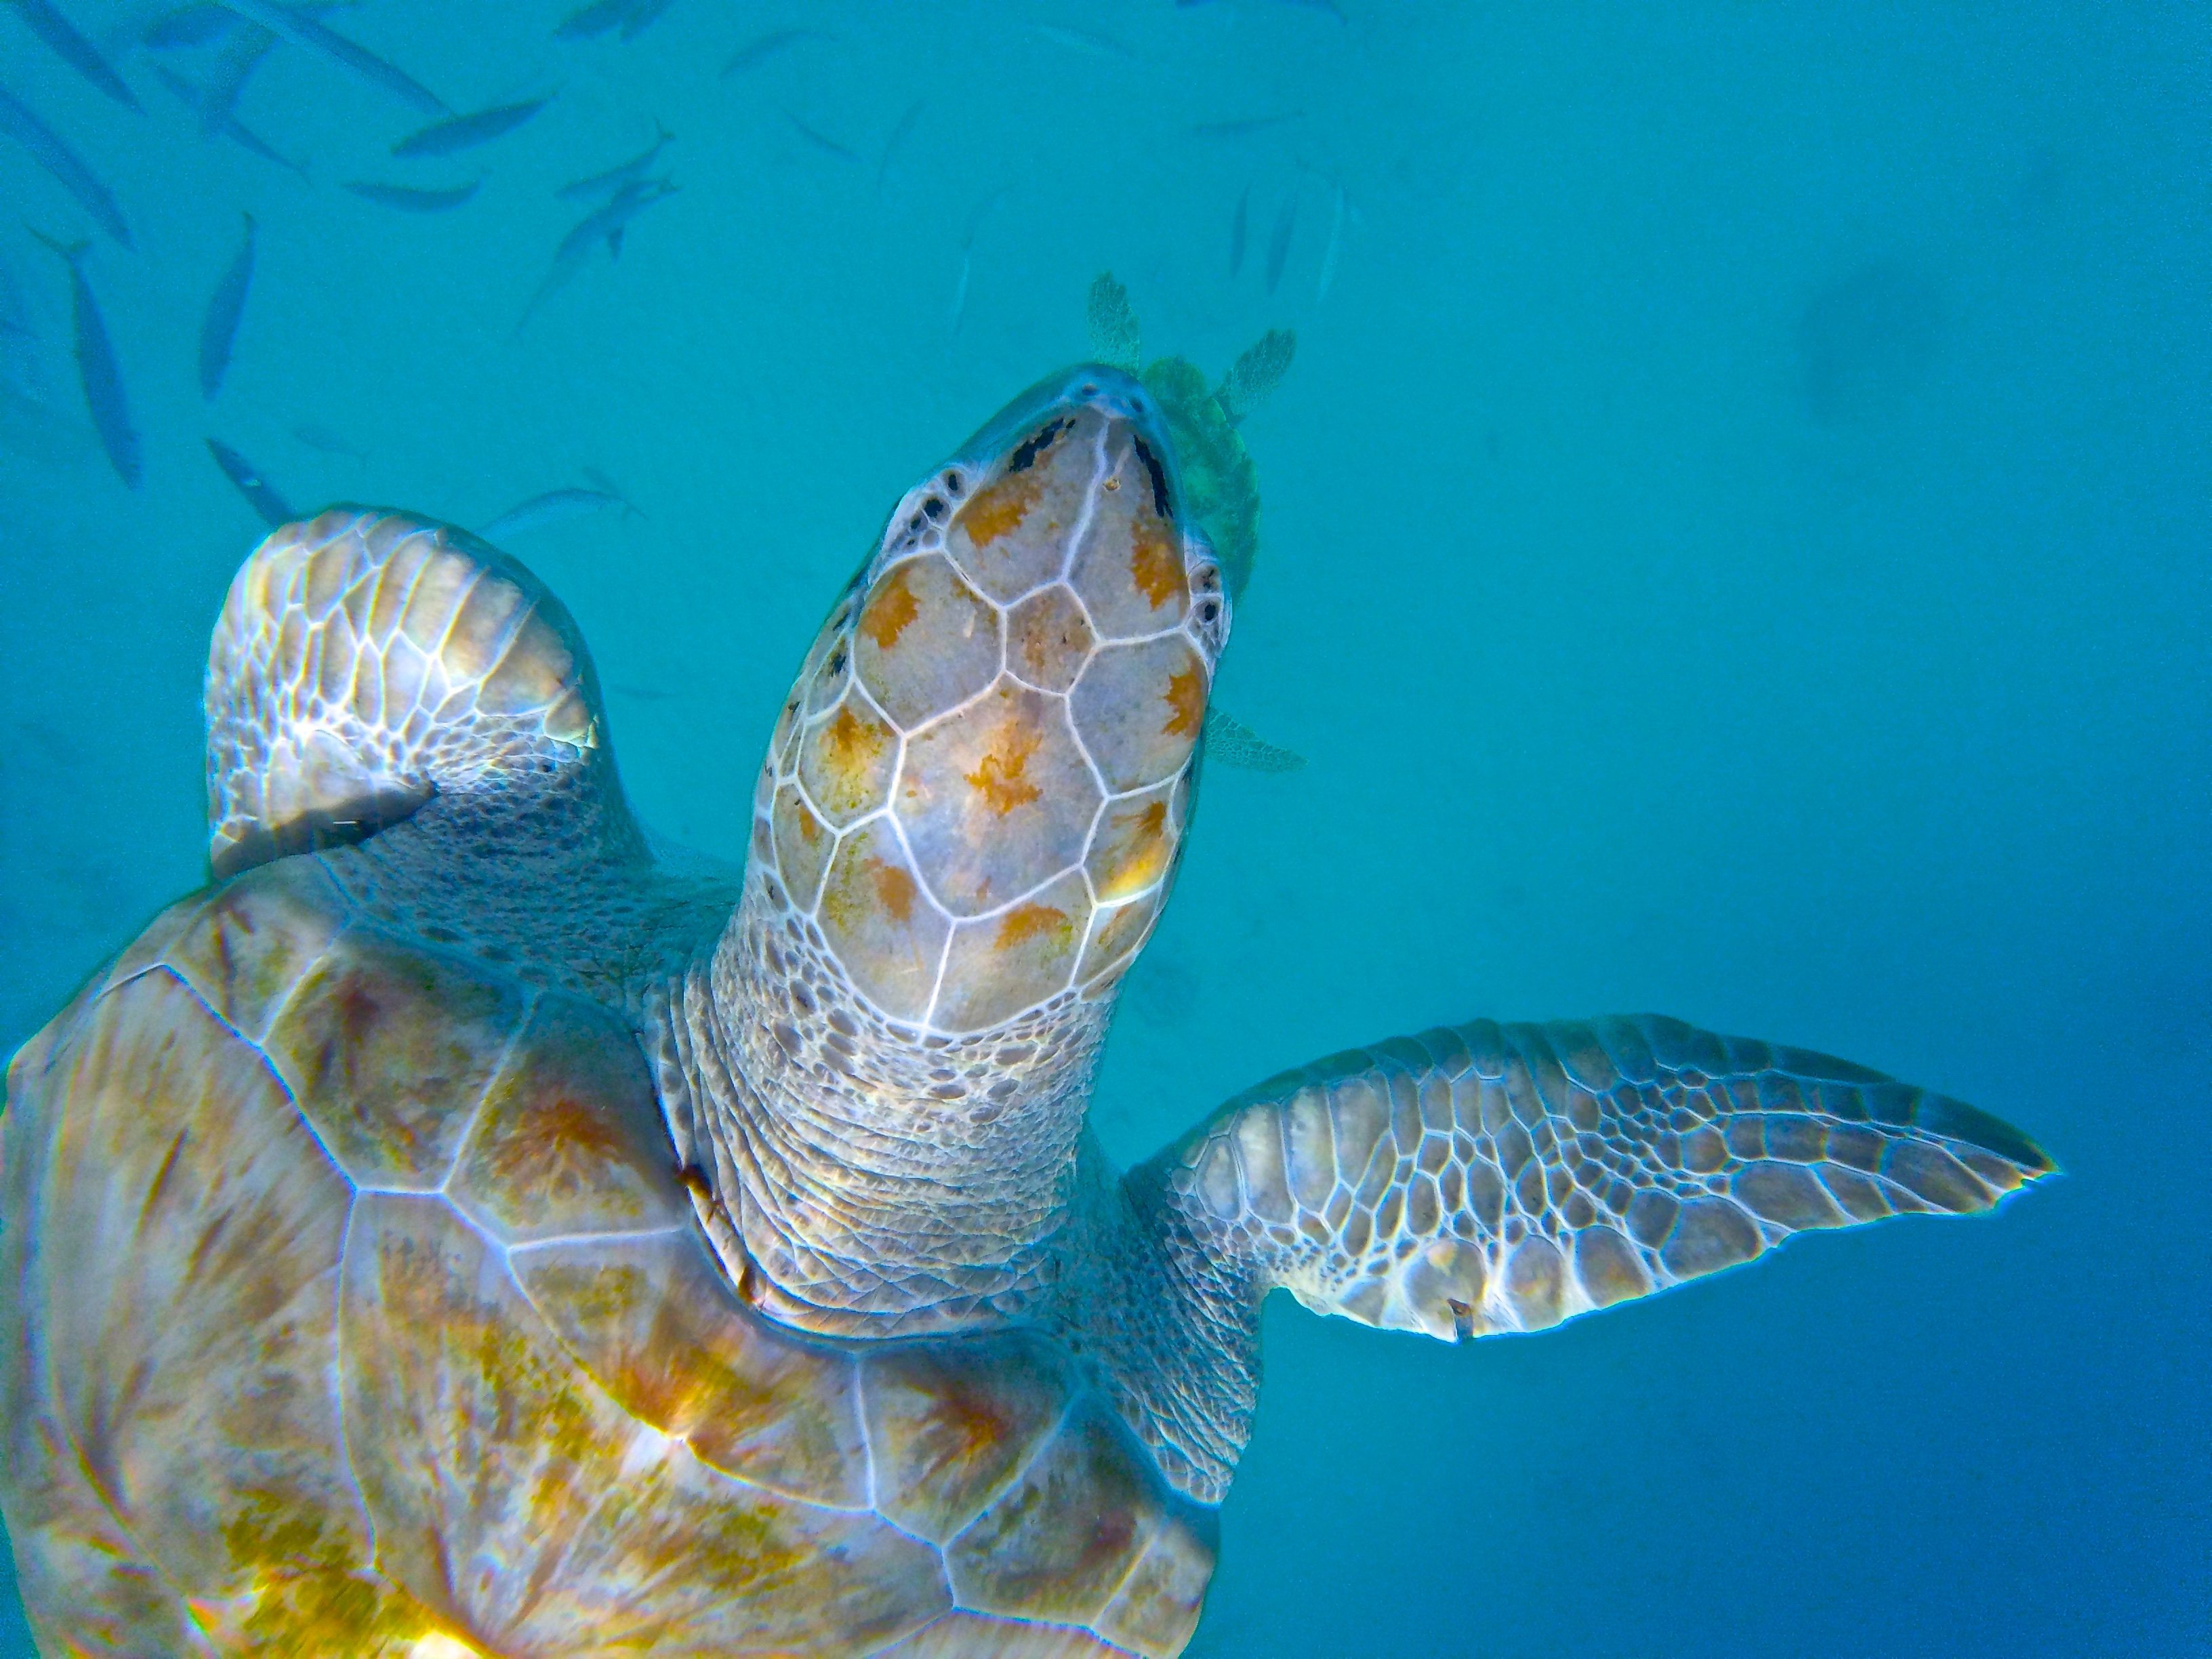 Swimming with sea turtles in the crystal-clear waters of Barbados. Photo by Kimberley Johnson, Ottawa Magazine.